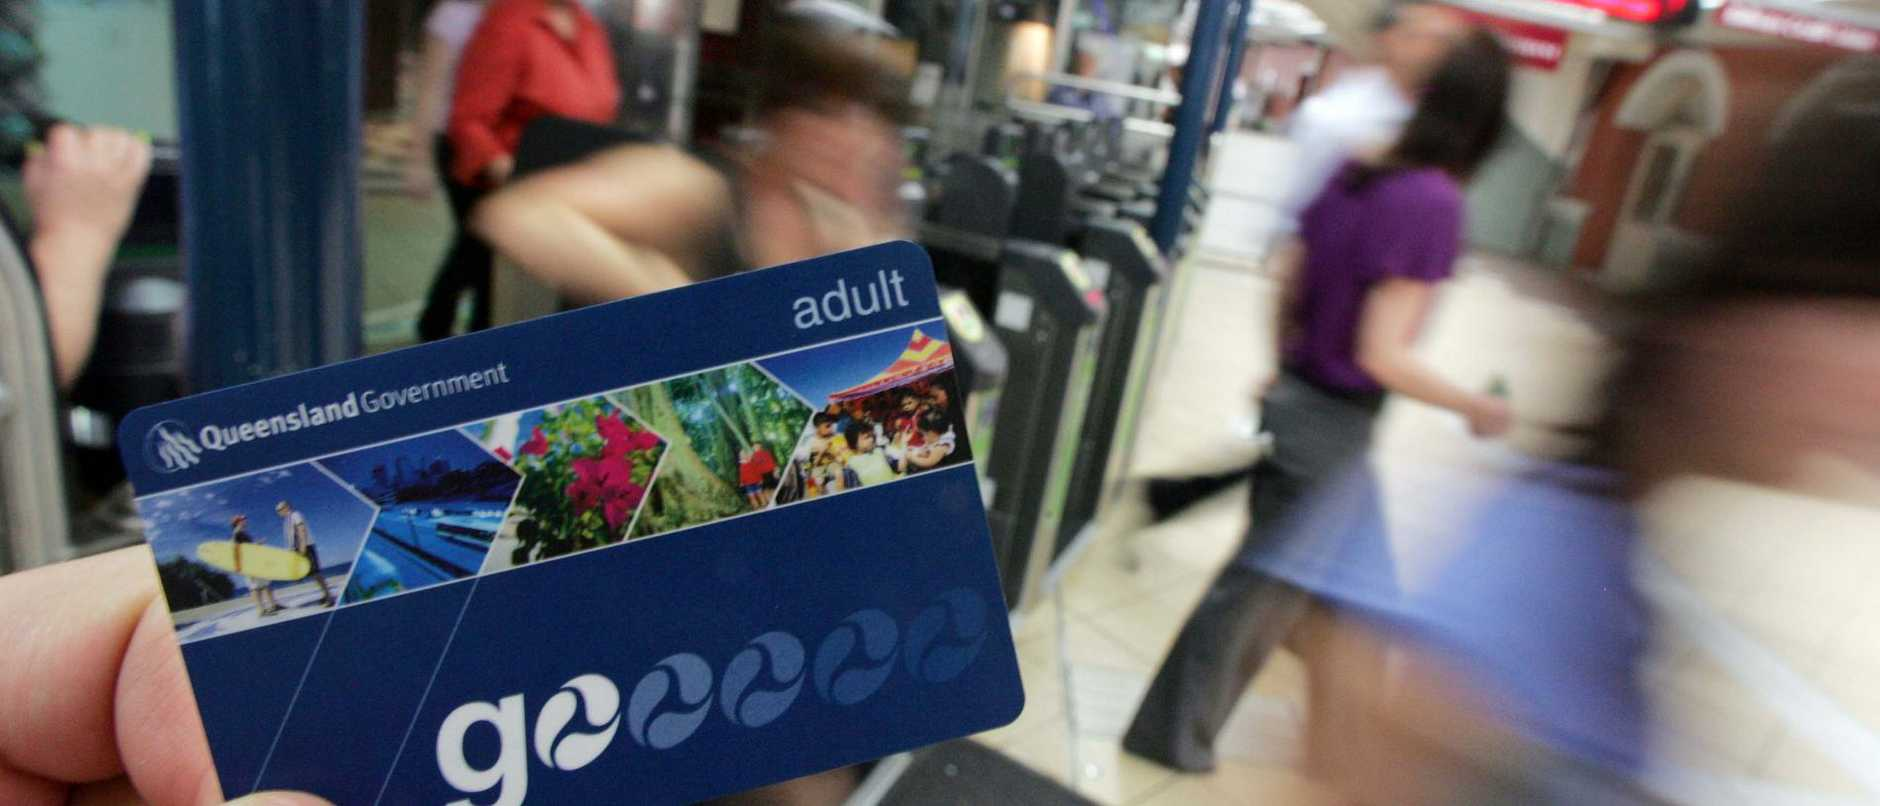 Go Card from TransLink, being used at Central Railway Station, Brisbane City.